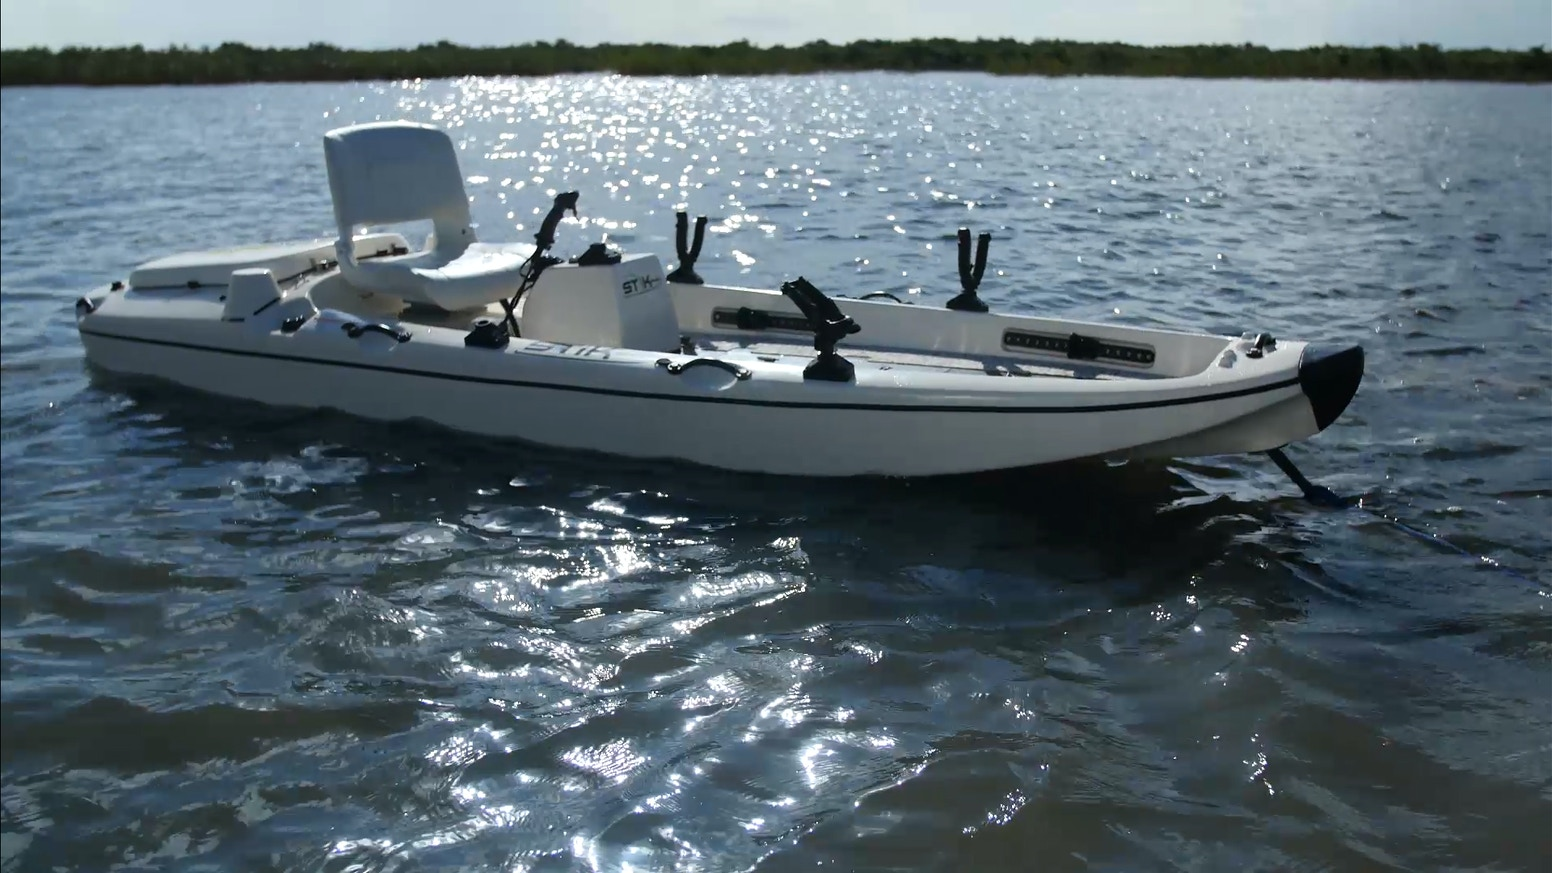 Stik Boat | The One & Only Personal Fishing Craft by Chris Petri